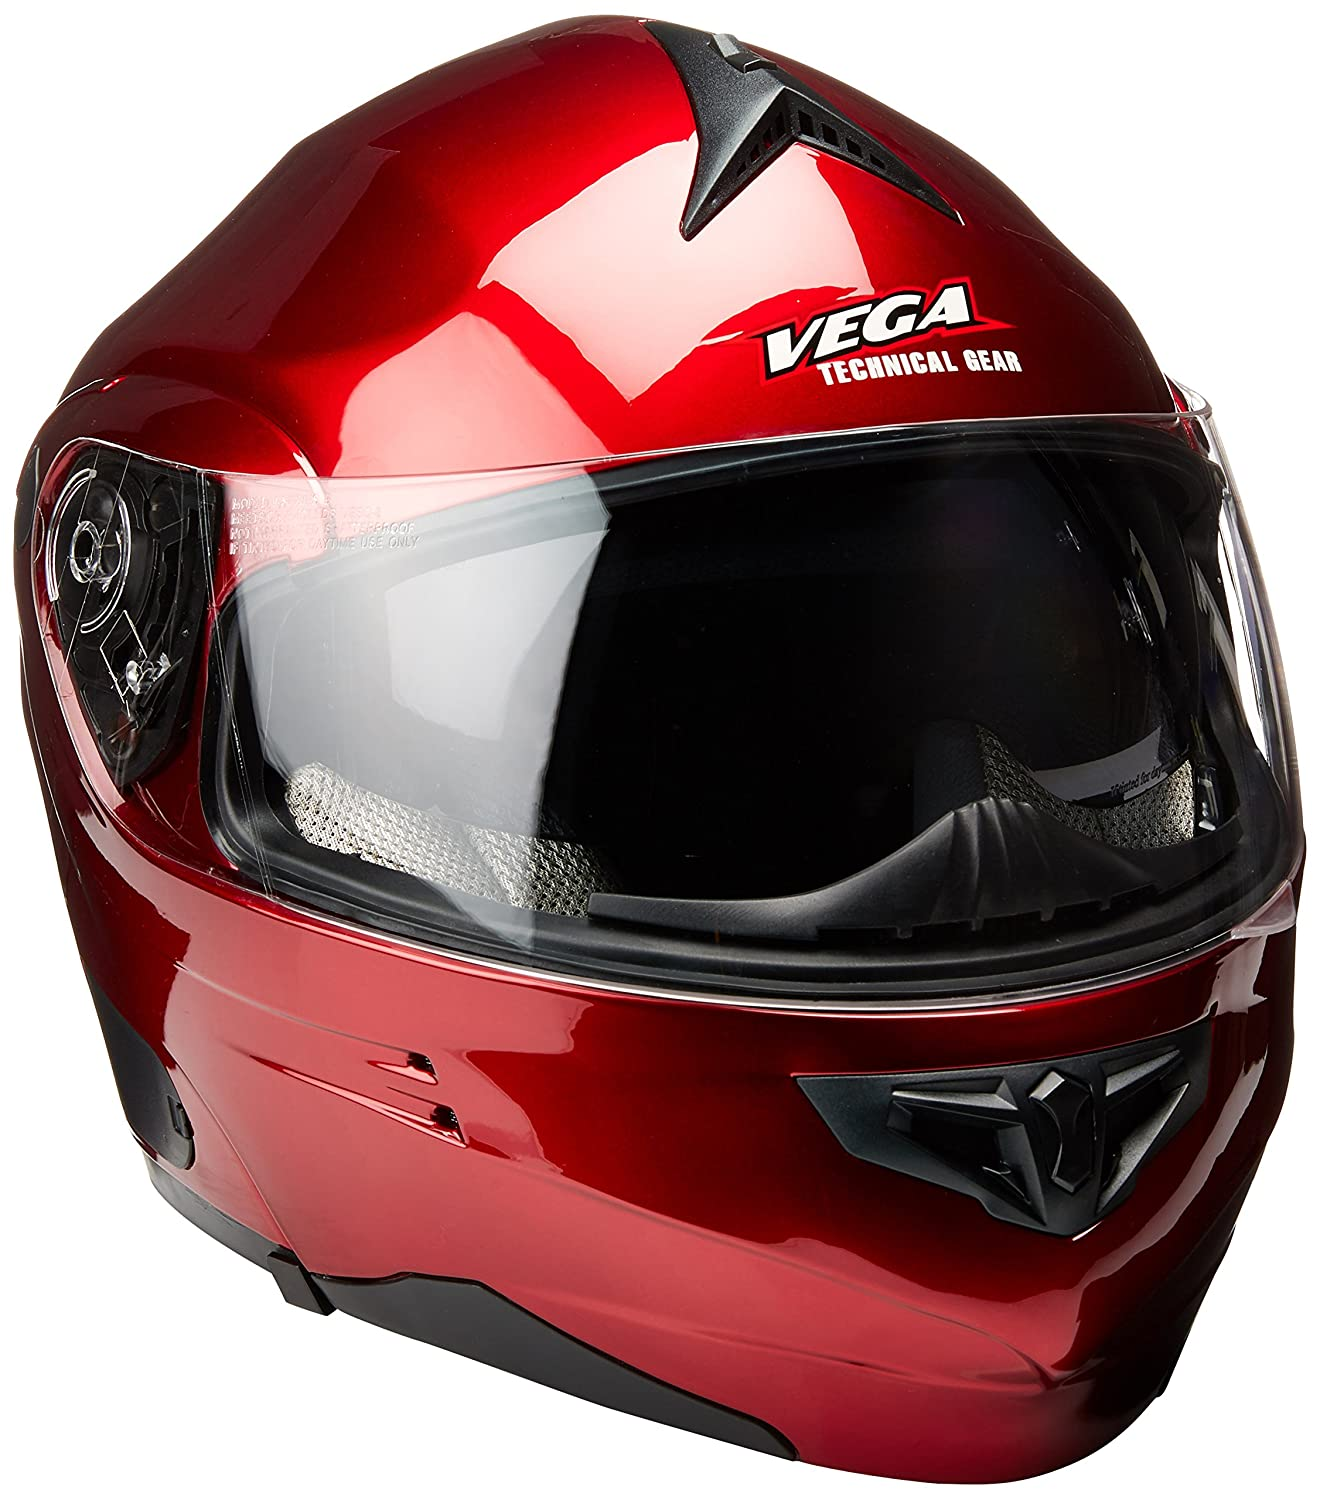 Amazon.com: Vega Summit 3.1 Full Face Modular Helmet (Grey Metallic, Large): Automotive